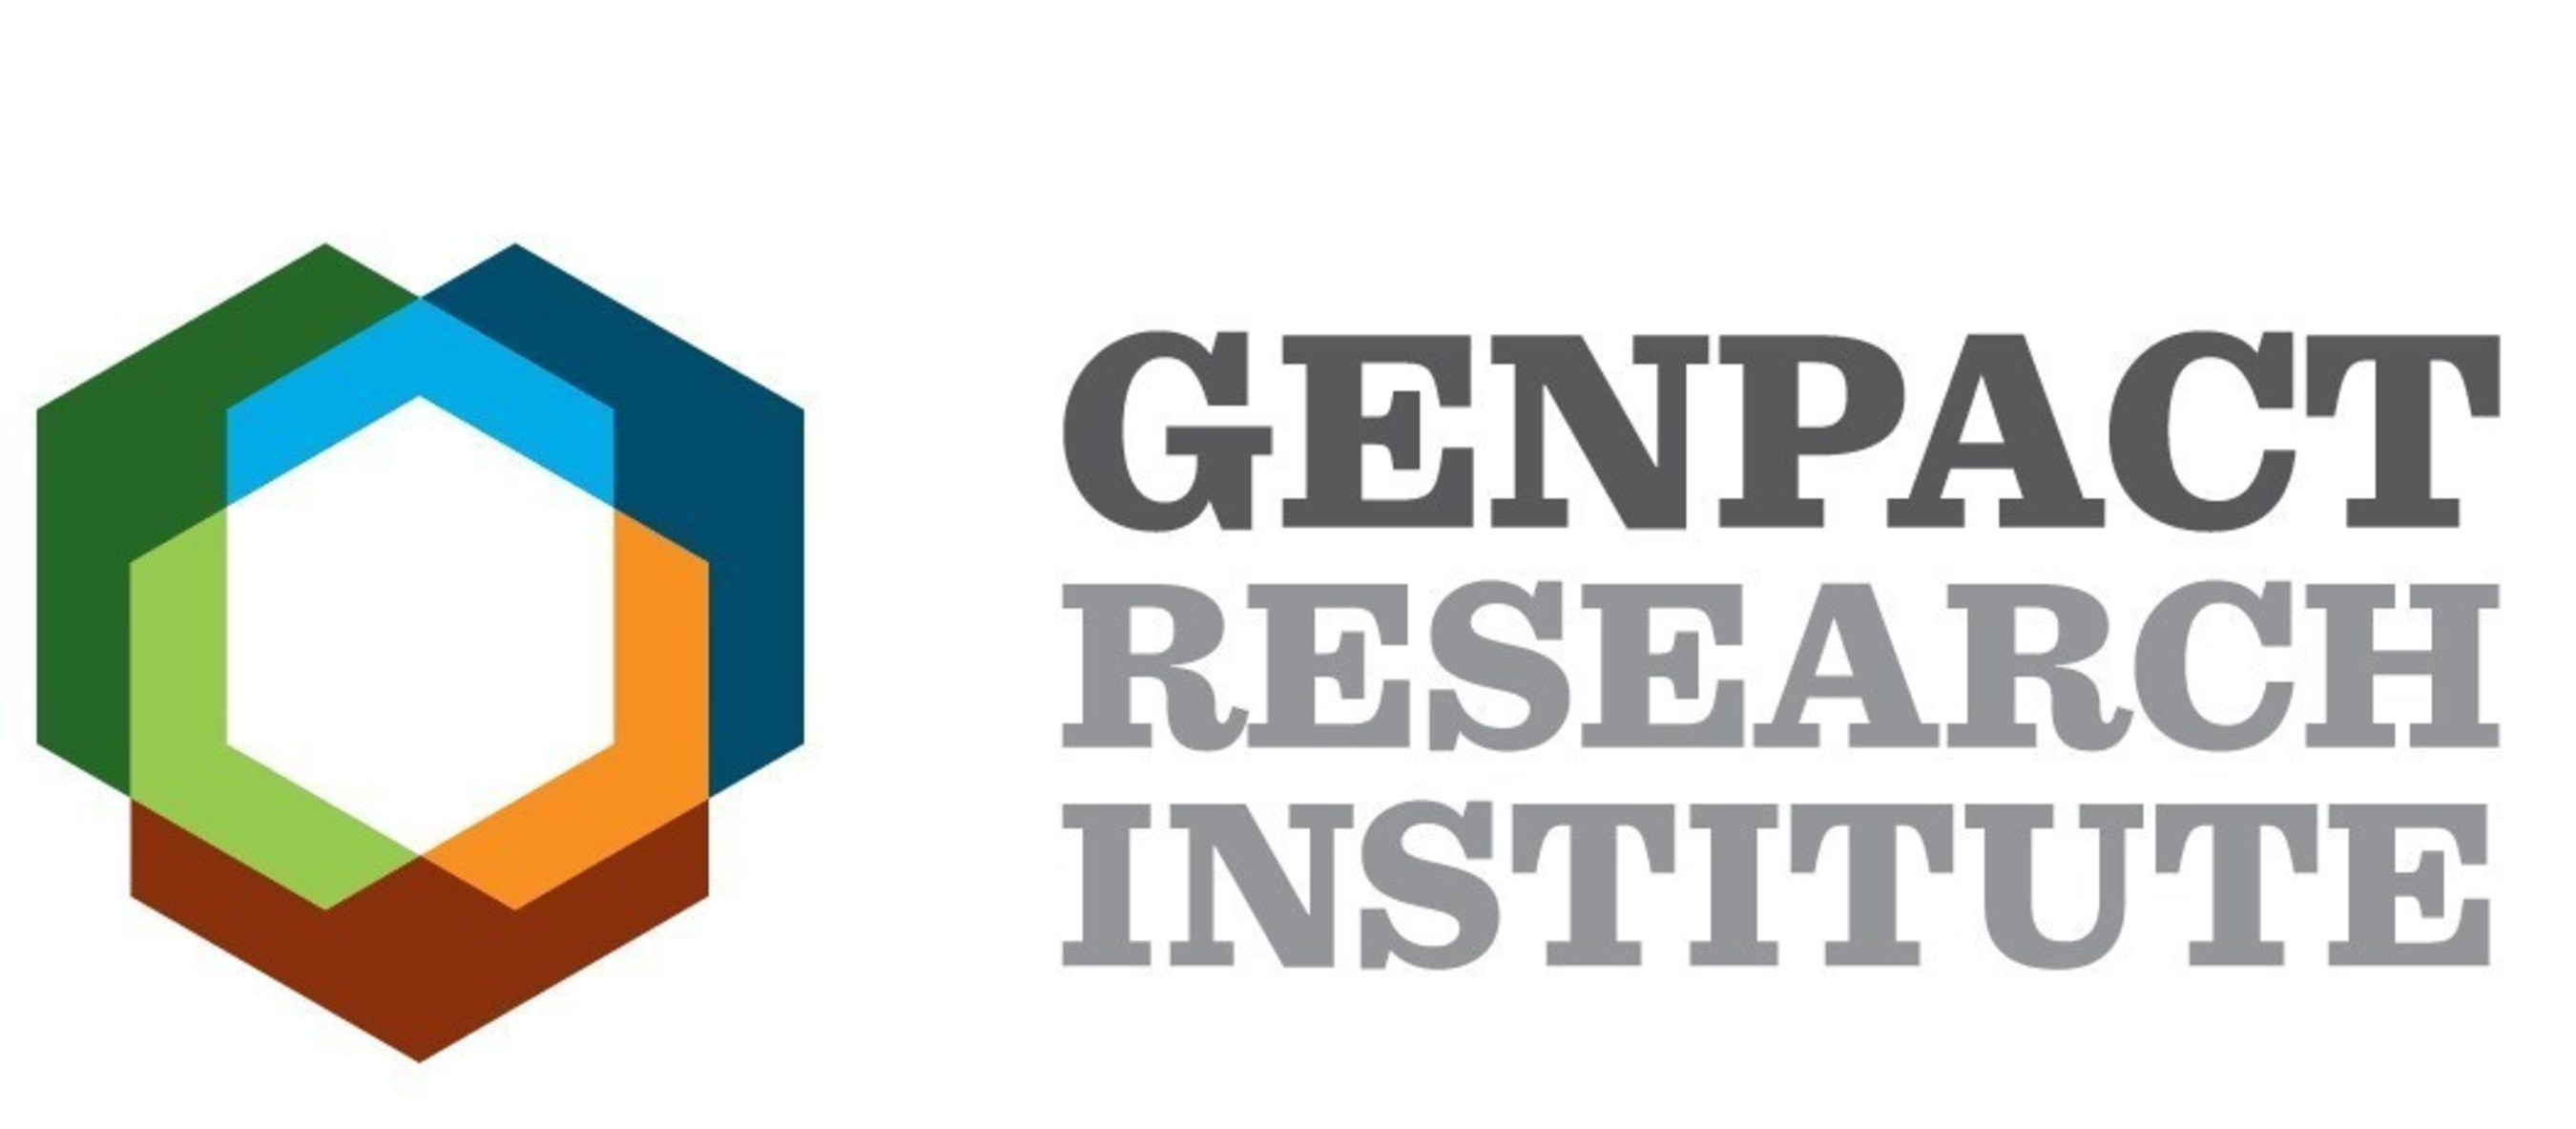 Genpact Research Institute logo